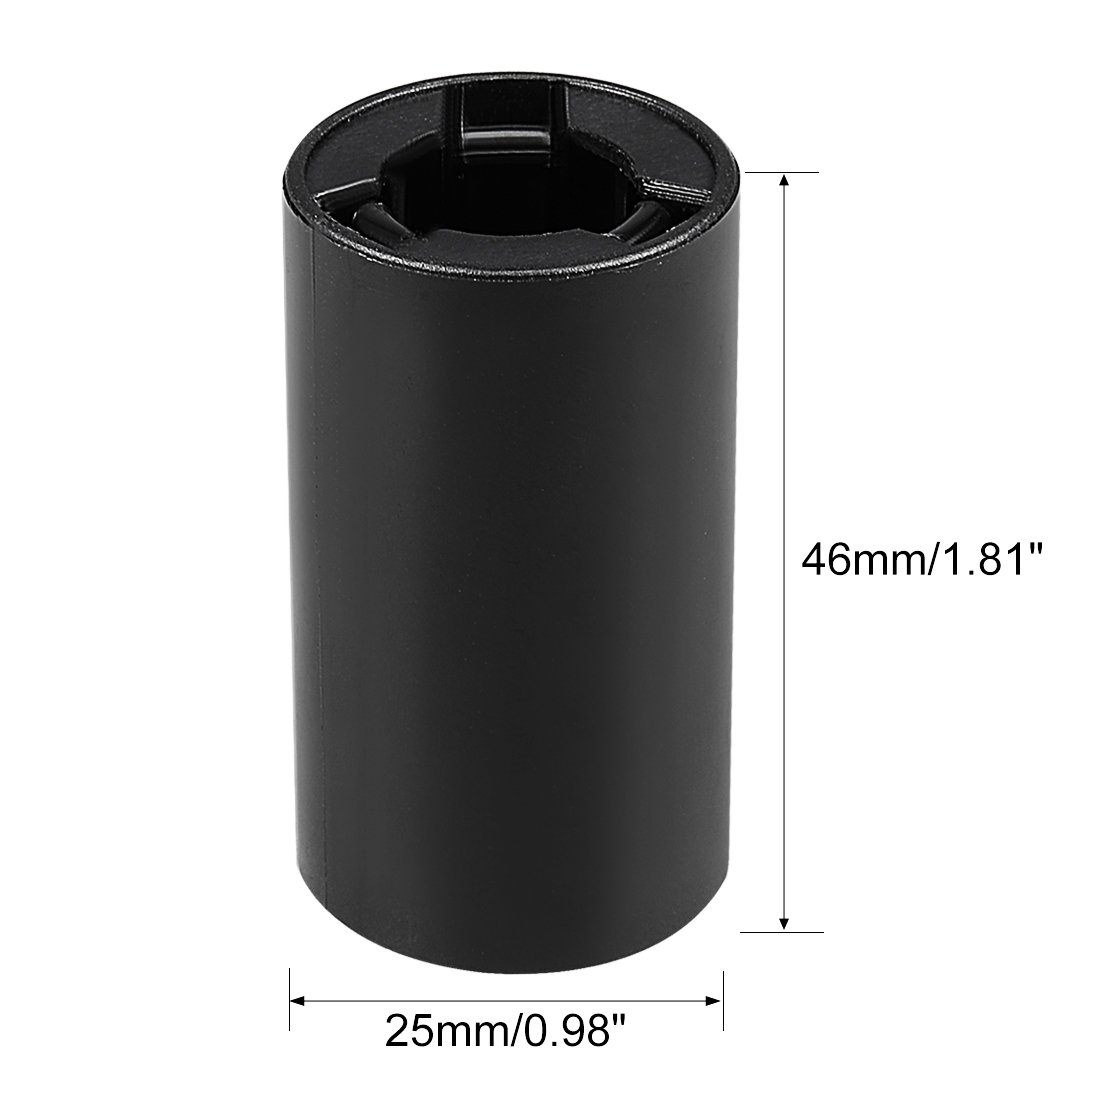 uxcell 1 pcs AAA to Size AA Battery Adapters Converter Cases AA-Adapter Clear